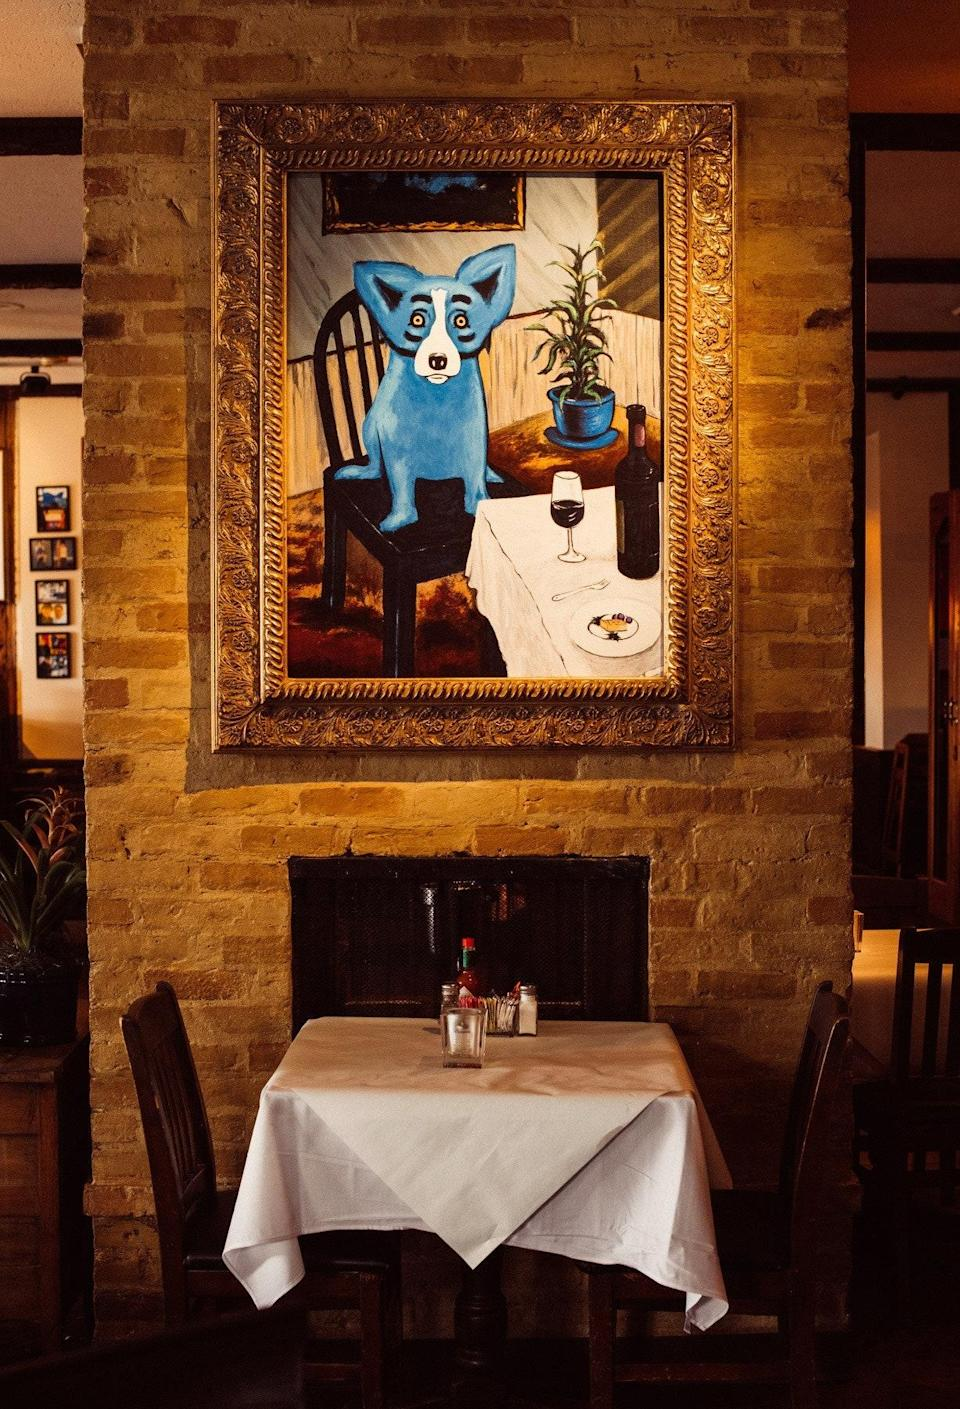 """<p><strong>What were your first impressions when you arrived?</strong> From a distance, this cafe looks fairly nondescript, but the approach reveals a couple of sculptures—including a couple of big, colorful dogs that hint at a more esoteric situation inside. The blue dog in question is the mascot and talismanic subject of revered late local artist George Rodrigue, whose work can be seen all across the state, especially in <a href=""""https://www.cntraveler.com/destinations/new-orleans?mbid=synd_yahoo_rss"""" rel=""""nofollow noopener"""" target=""""_blank"""" data-ylk=""""slk:New Orleans"""" class=""""link rapid-noclick-resp"""">New Orleans</a> and here in Lafayette. As you might imagine, the interior is a shrine to his oeuvre, with dozens of original paintings and prints, and more playful dog portraits than are perhaps collected anywhere. It's like eating in a museum dedicated to one man.</p> <p><strong>What's the crowd like?</strong> Rodrigue's art is incredibly accessible, and loved by kids and adults alike, so there's a good <a href=""""https://www.cntraveler.com/gallery/things-to-do-in-new-orleans-with-kids-that-are-fun-for-you-too?mbid=synd_yahoo_rss"""" rel=""""nofollow noopener"""" target=""""_blank"""" data-ylk=""""slk:showing of families"""" class=""""link rapid-noclick-resp"""">showing of families</a>. His art also hangs in some of the region's most elevated galleries, and so there's also an <a href=""""https://www.cntraveler.com/gallery/best-museums-in-new-orleans?mbid=synd_yahoo_rss"""" rel=""""nofollow noopener"""" target=""""_blank"""" data-ylk=""""slk:arty crowd"""" class=""""link rapid-noclick-resp"""">arty crowd</a> that passes through to pay their respects while chowing on some classic Louisiana cuisine. It makes for a casually convivial ambience either way.</p> <p><strong>What should we be drinking?</strong> The cocktails are unswervingly classic, with takes on local libations such as a Hurricane that's a mile above the same drink on Bourbon Street and a French 75 and others that use tasty southern gins. The wine and beer selection i"""